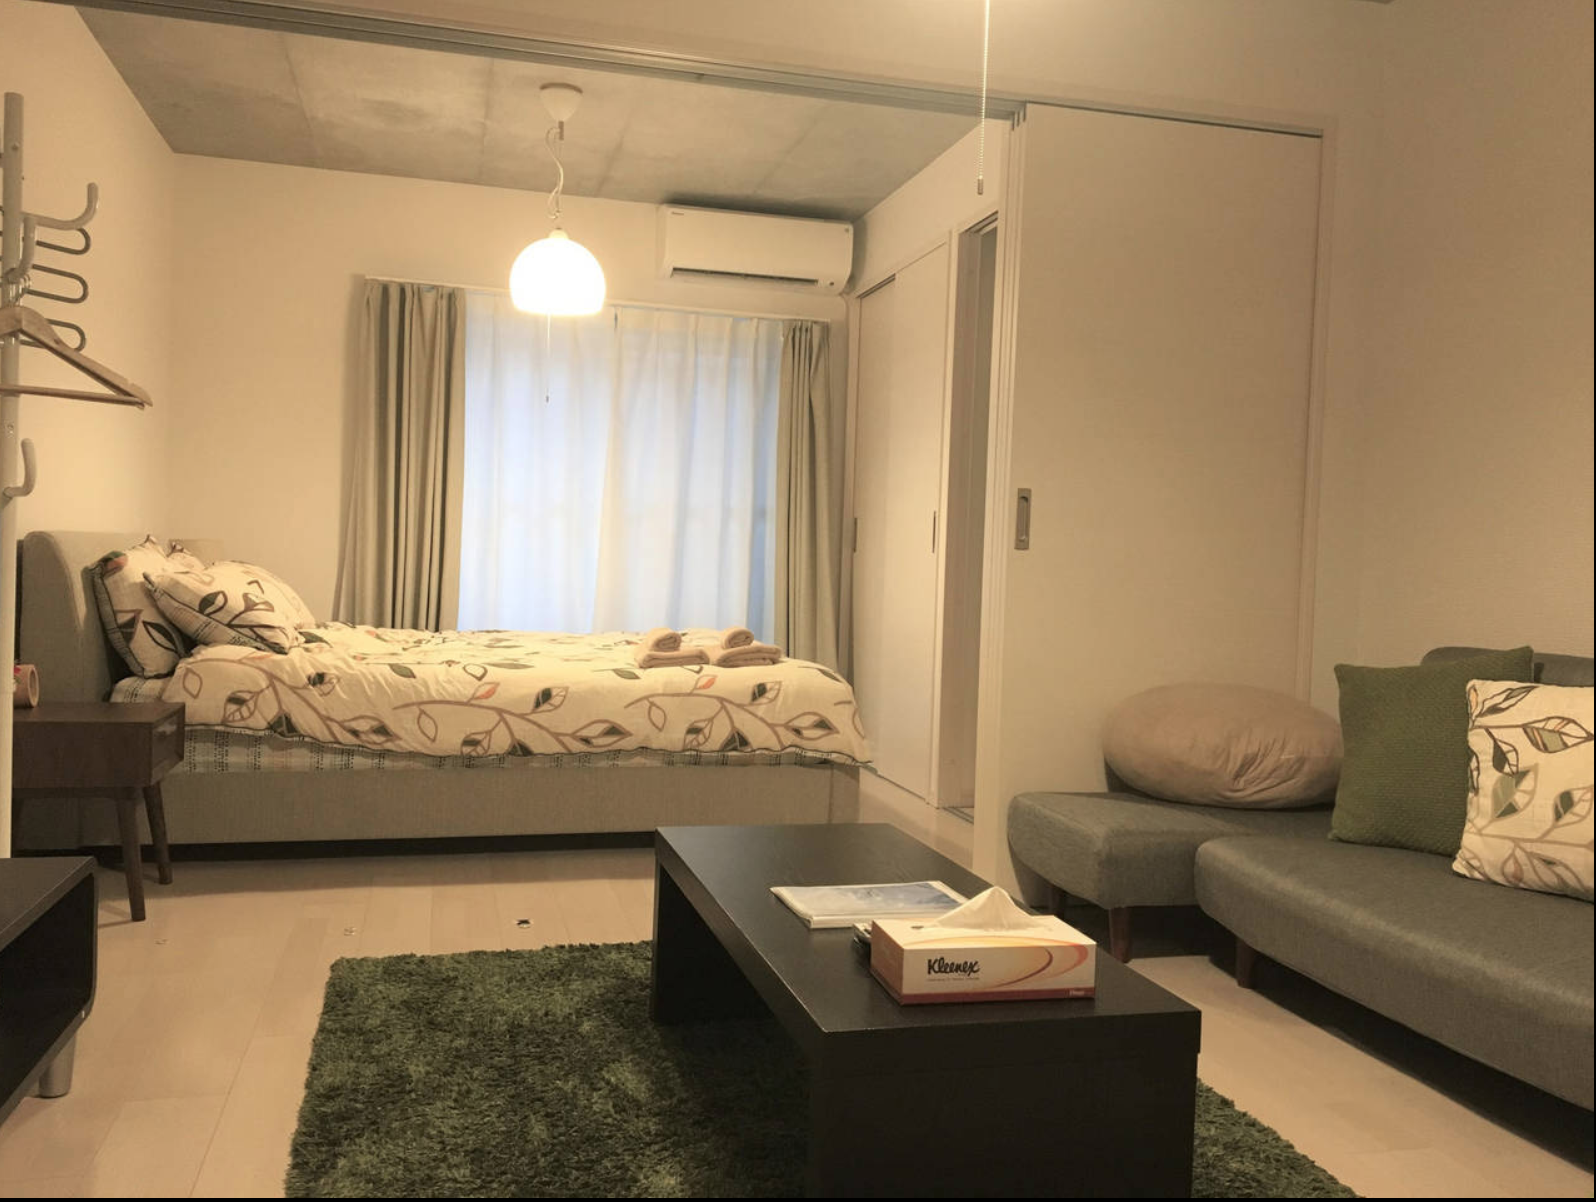 1BR furnished apartment in Minami-Azabu Regalia #201